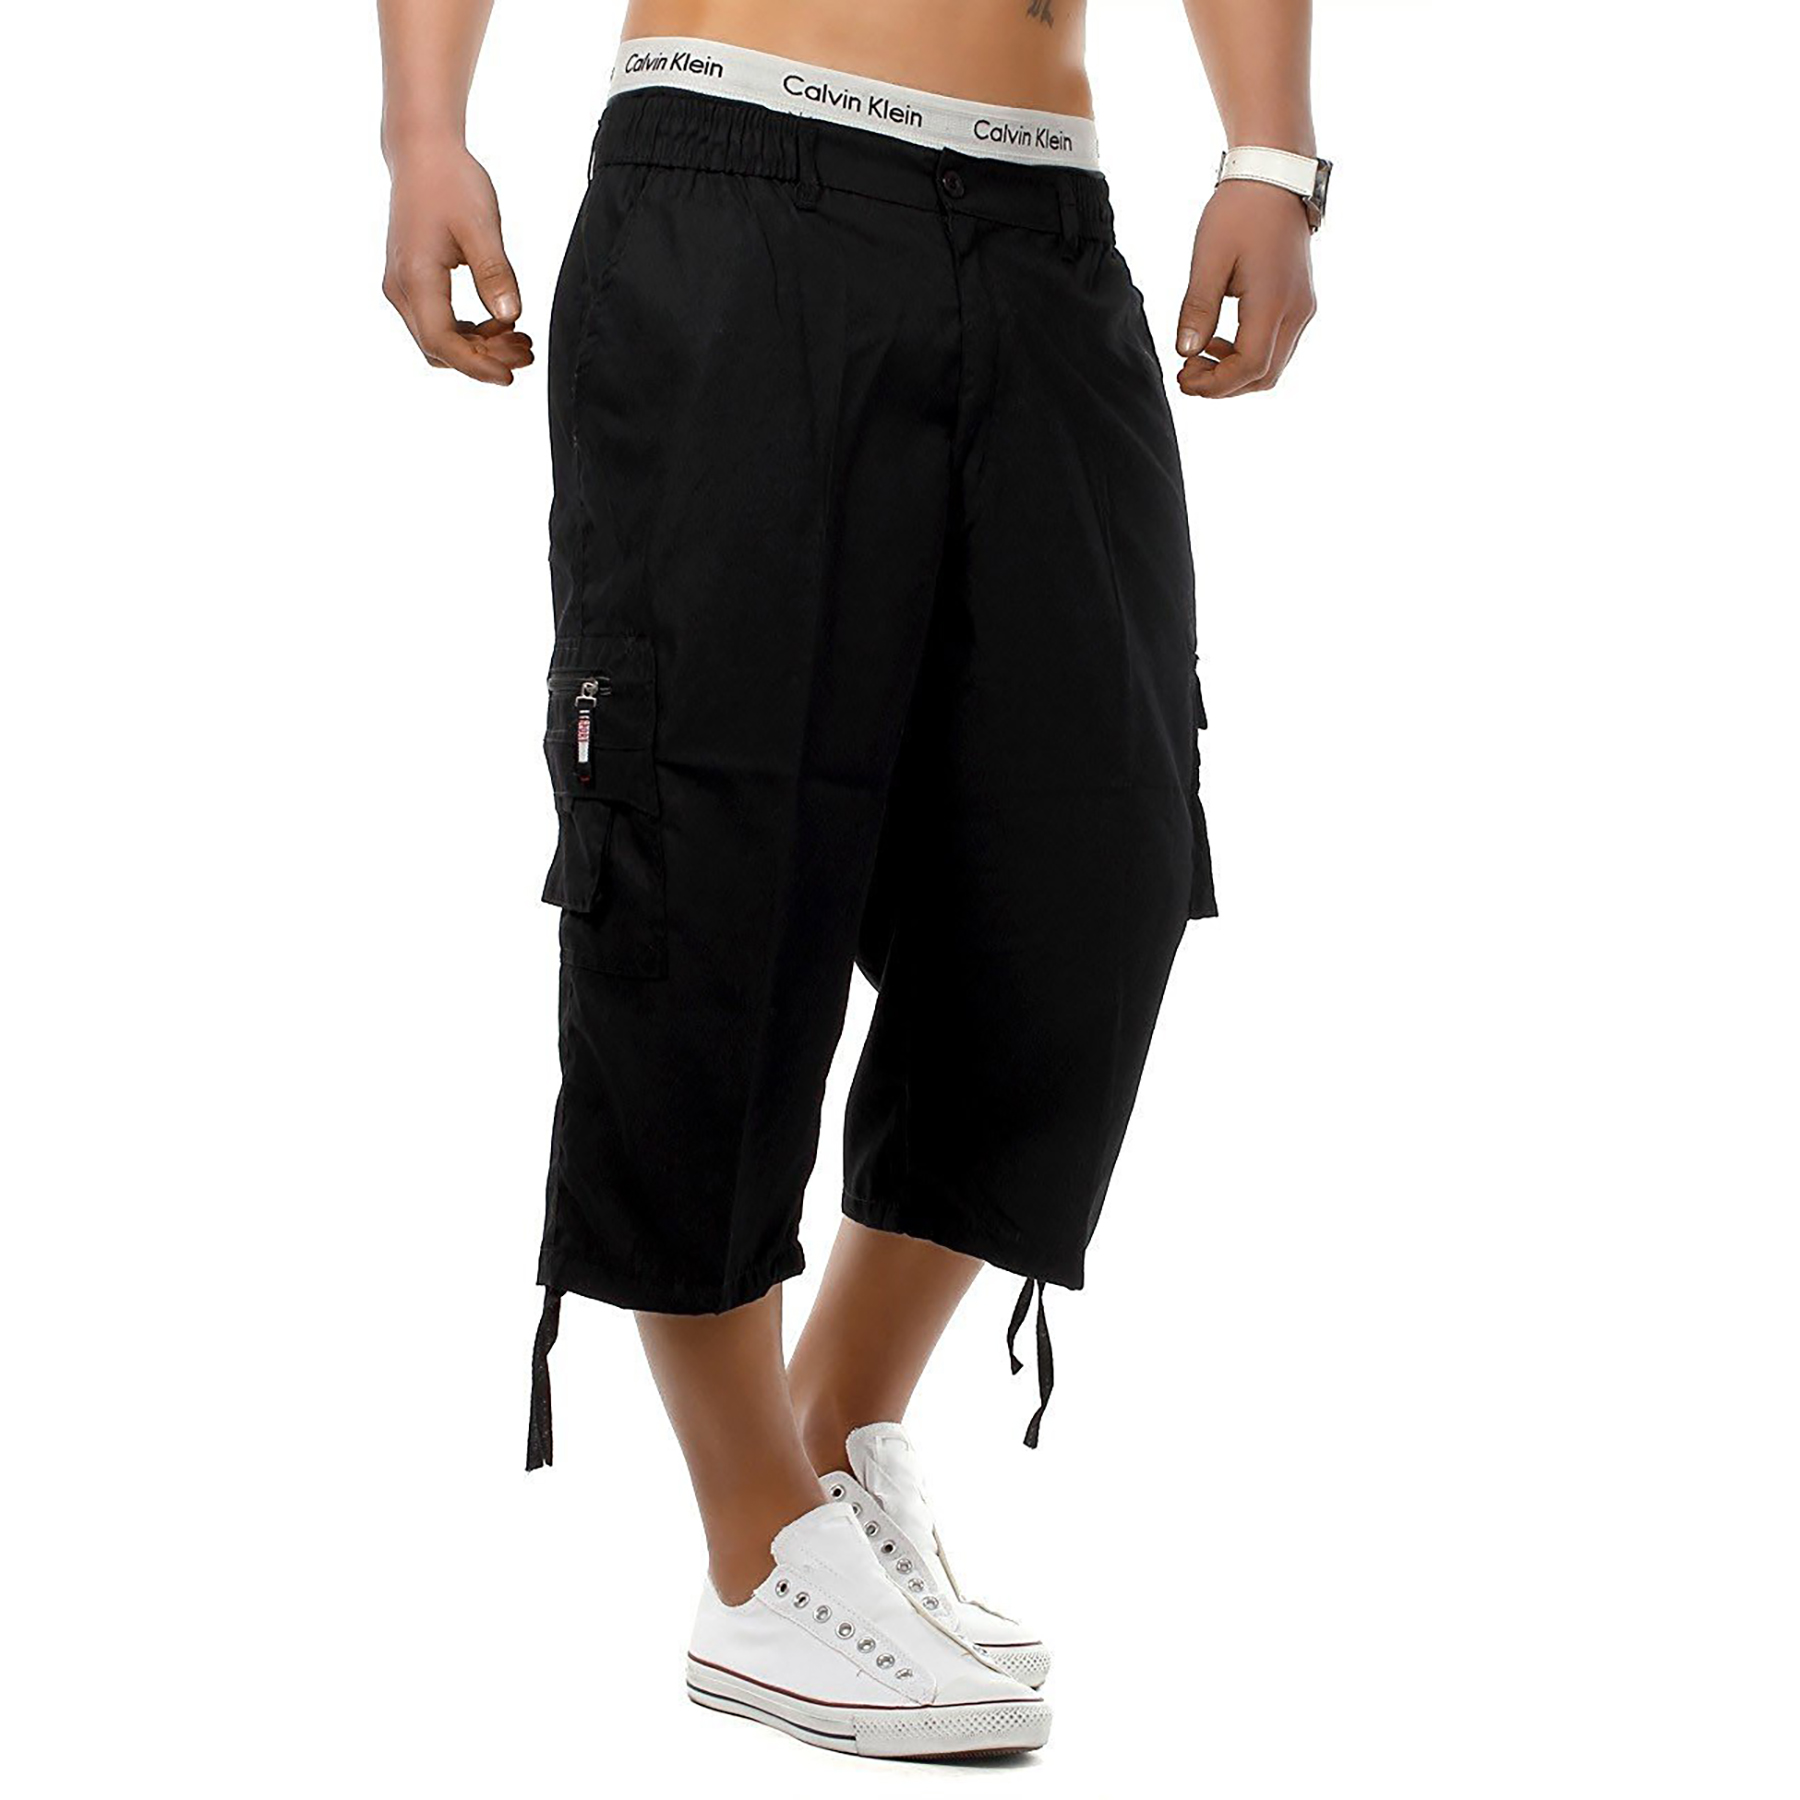 Mens-3-4-Long-Length-Shorts-Elasticated-Waist-Cargo-Combat-Three-Quarter-Shorts thumbnail 5